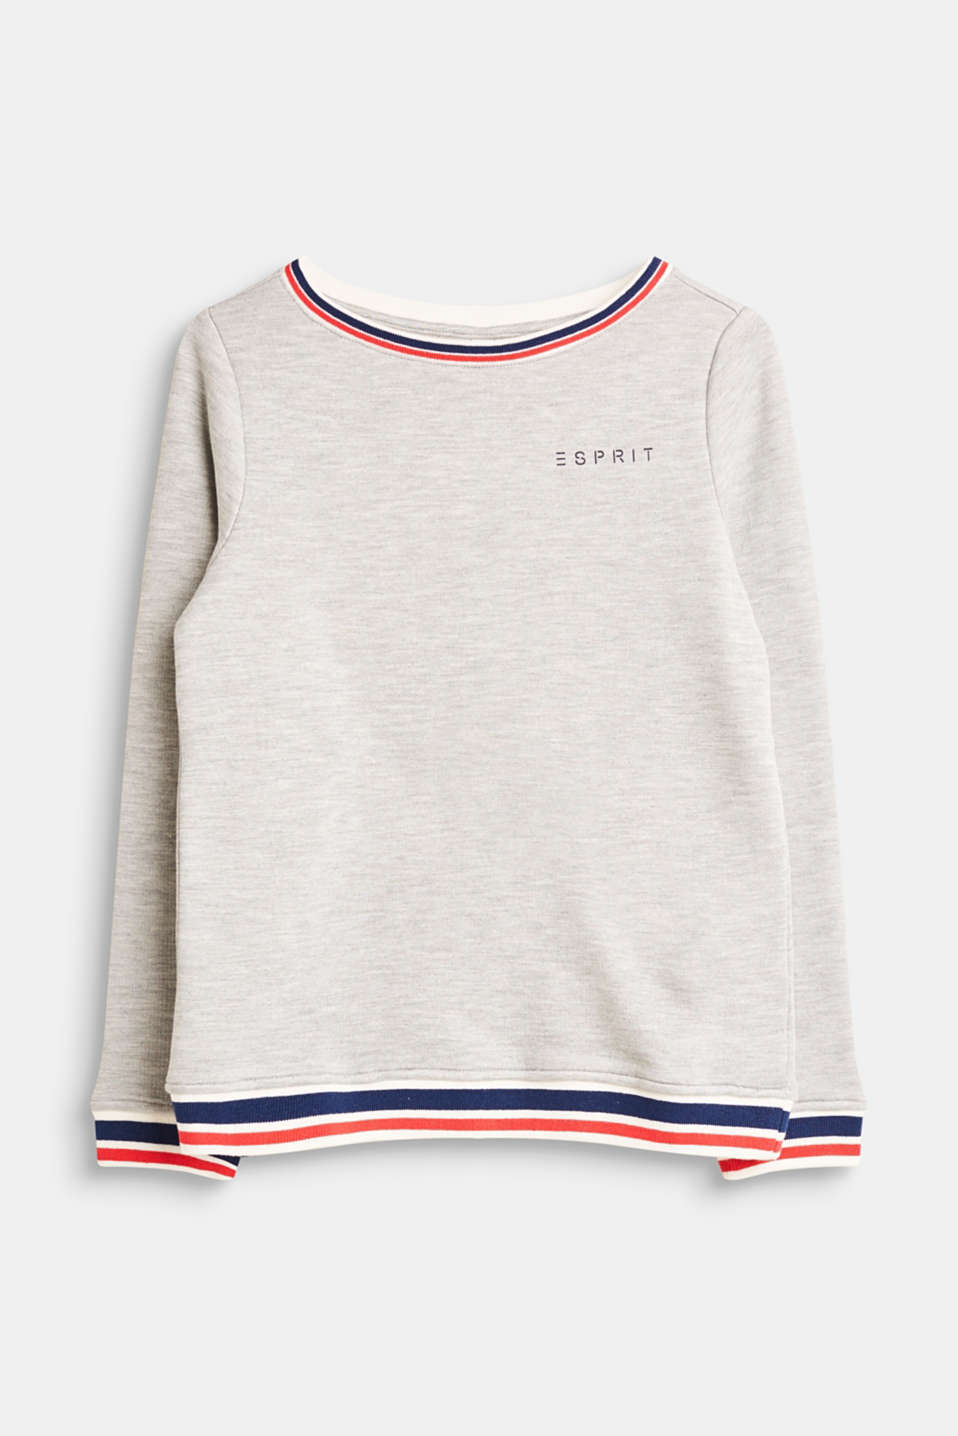 Esprit - Mottled sweatshirt with striped borders